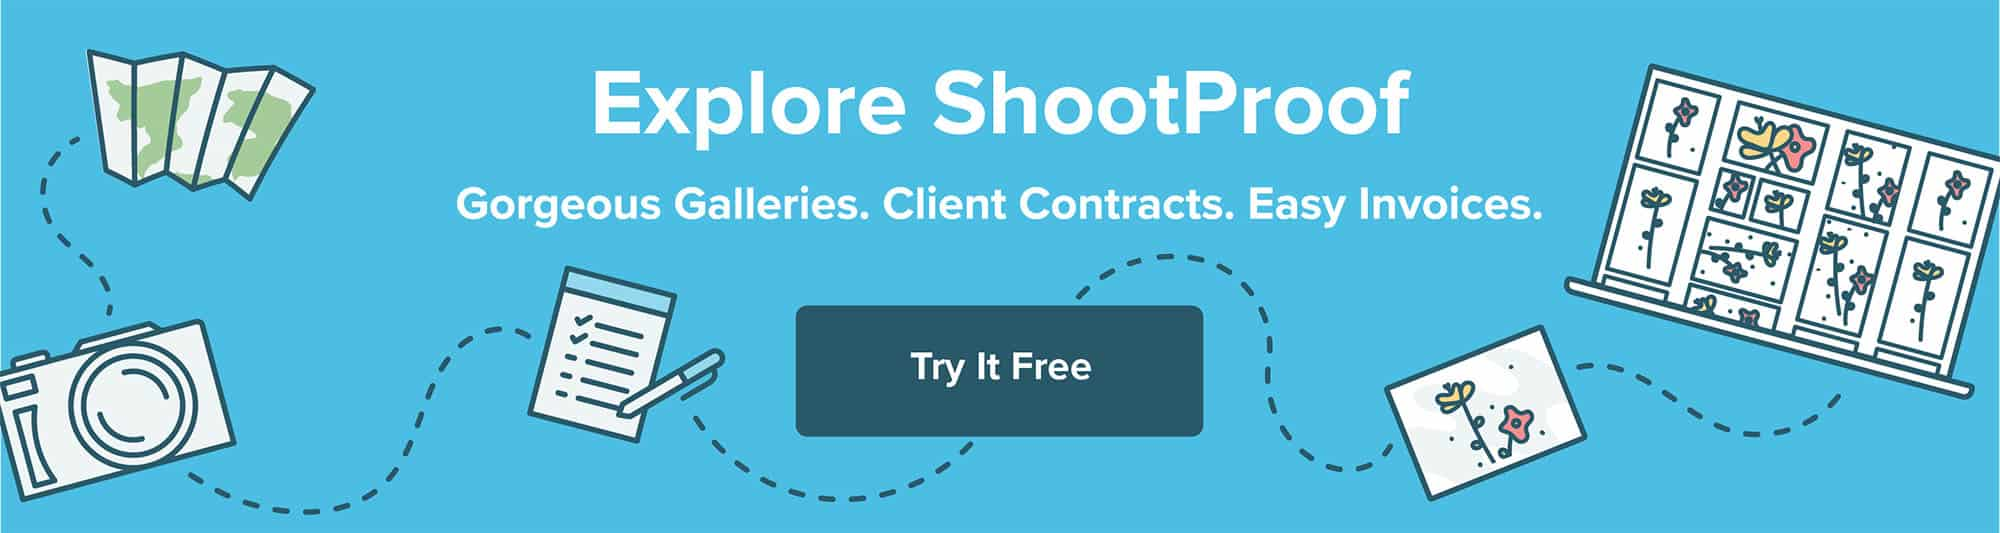 Start your photography business with ShootProof, your source for online galleries, contracts, invoices, and more!